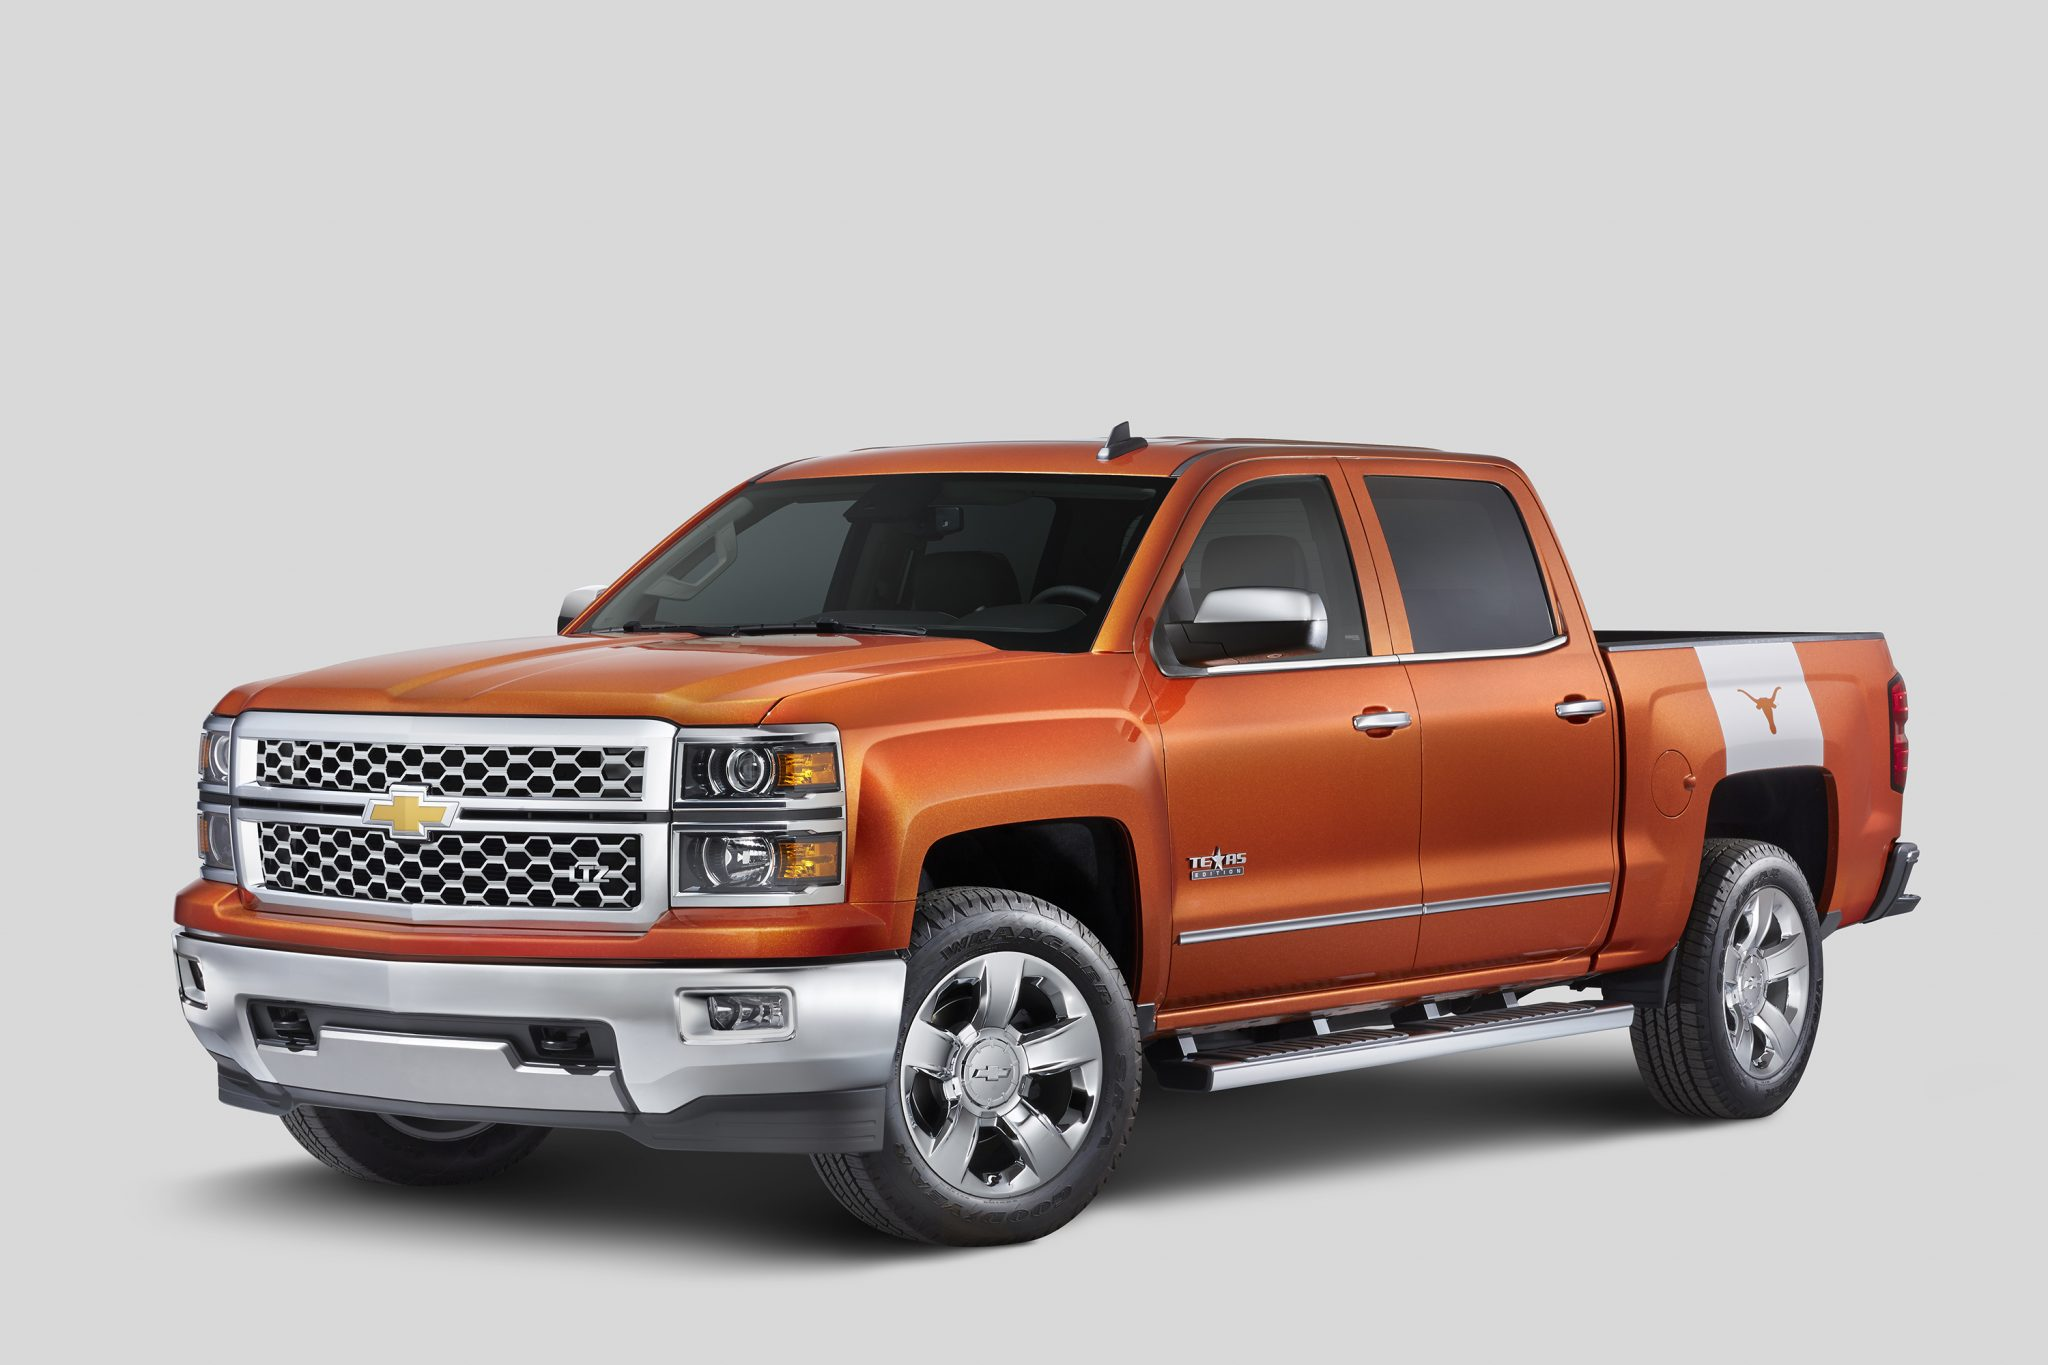 Gmc Special Edition Trucks >> Chevy Reveals 2015 Silverado University of Texas Edition - The News Wheel